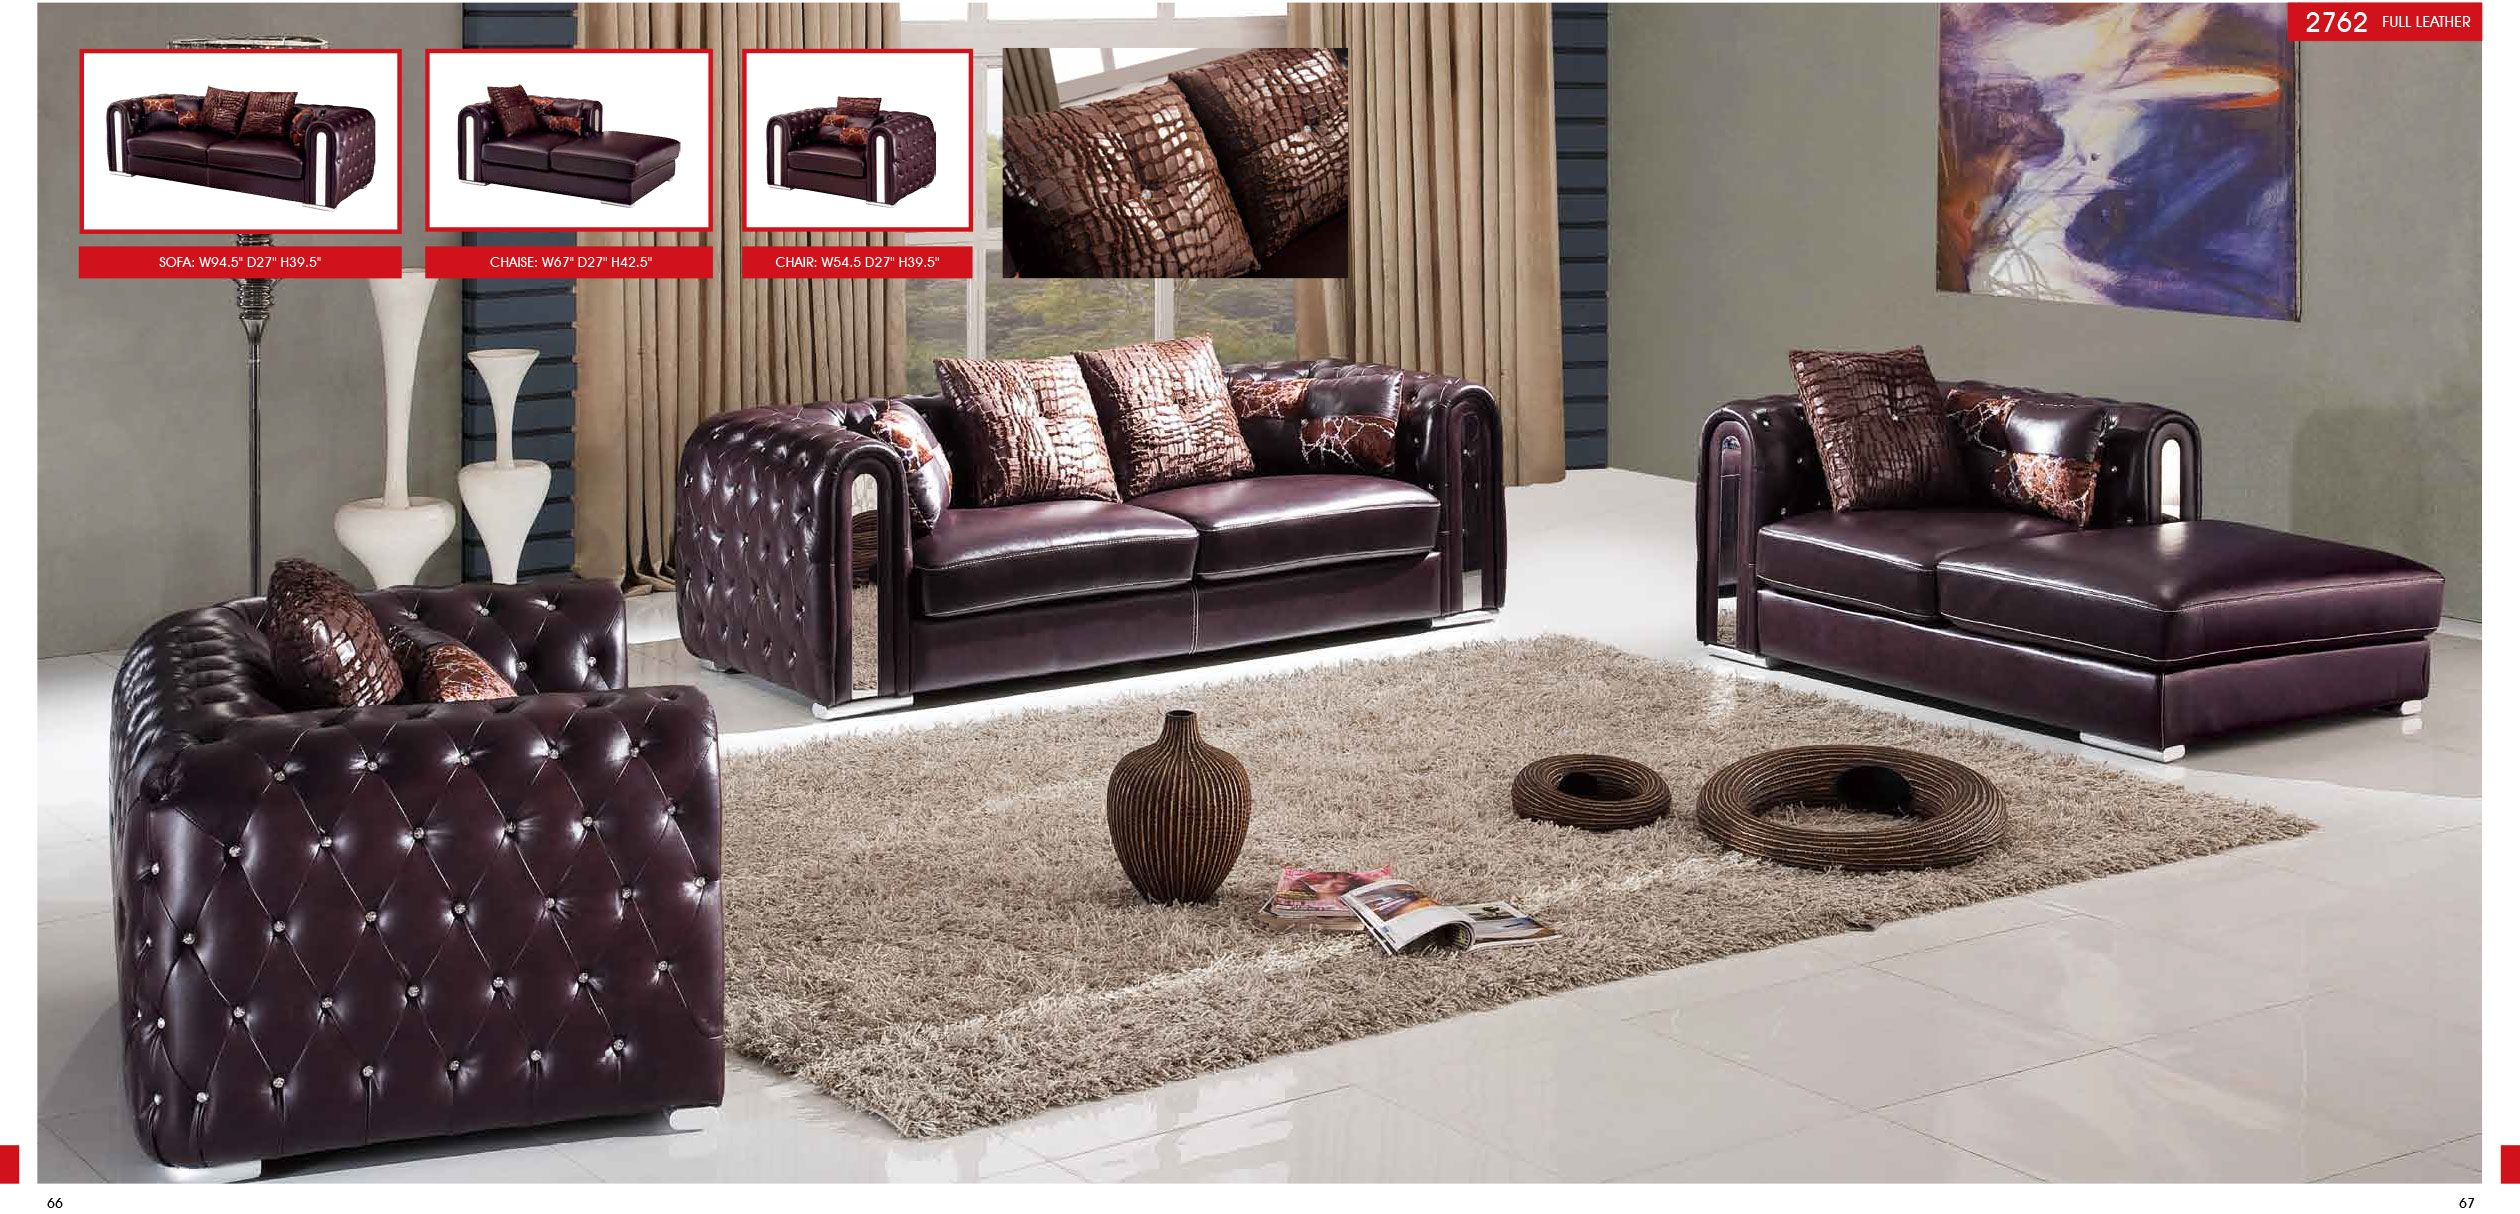 Full Leather Chair 2762 Living Room Sets Furniture Modern Living Room Furniture Sets 3 Piece Living Room Set